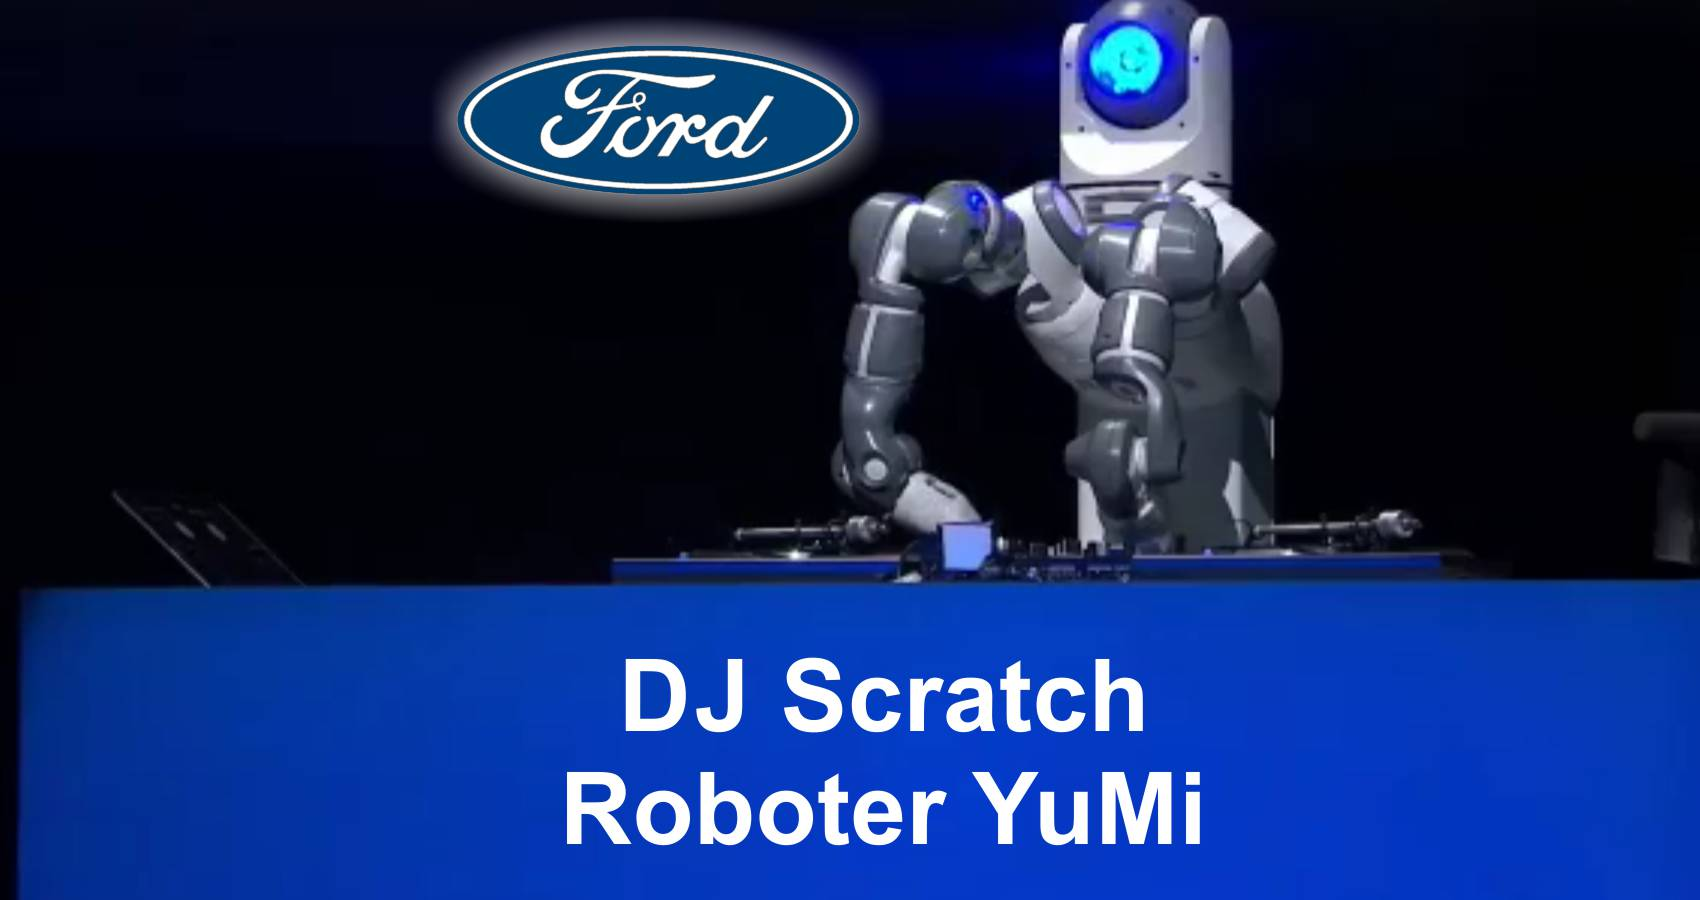 Ford YuMi Scratch Roboter